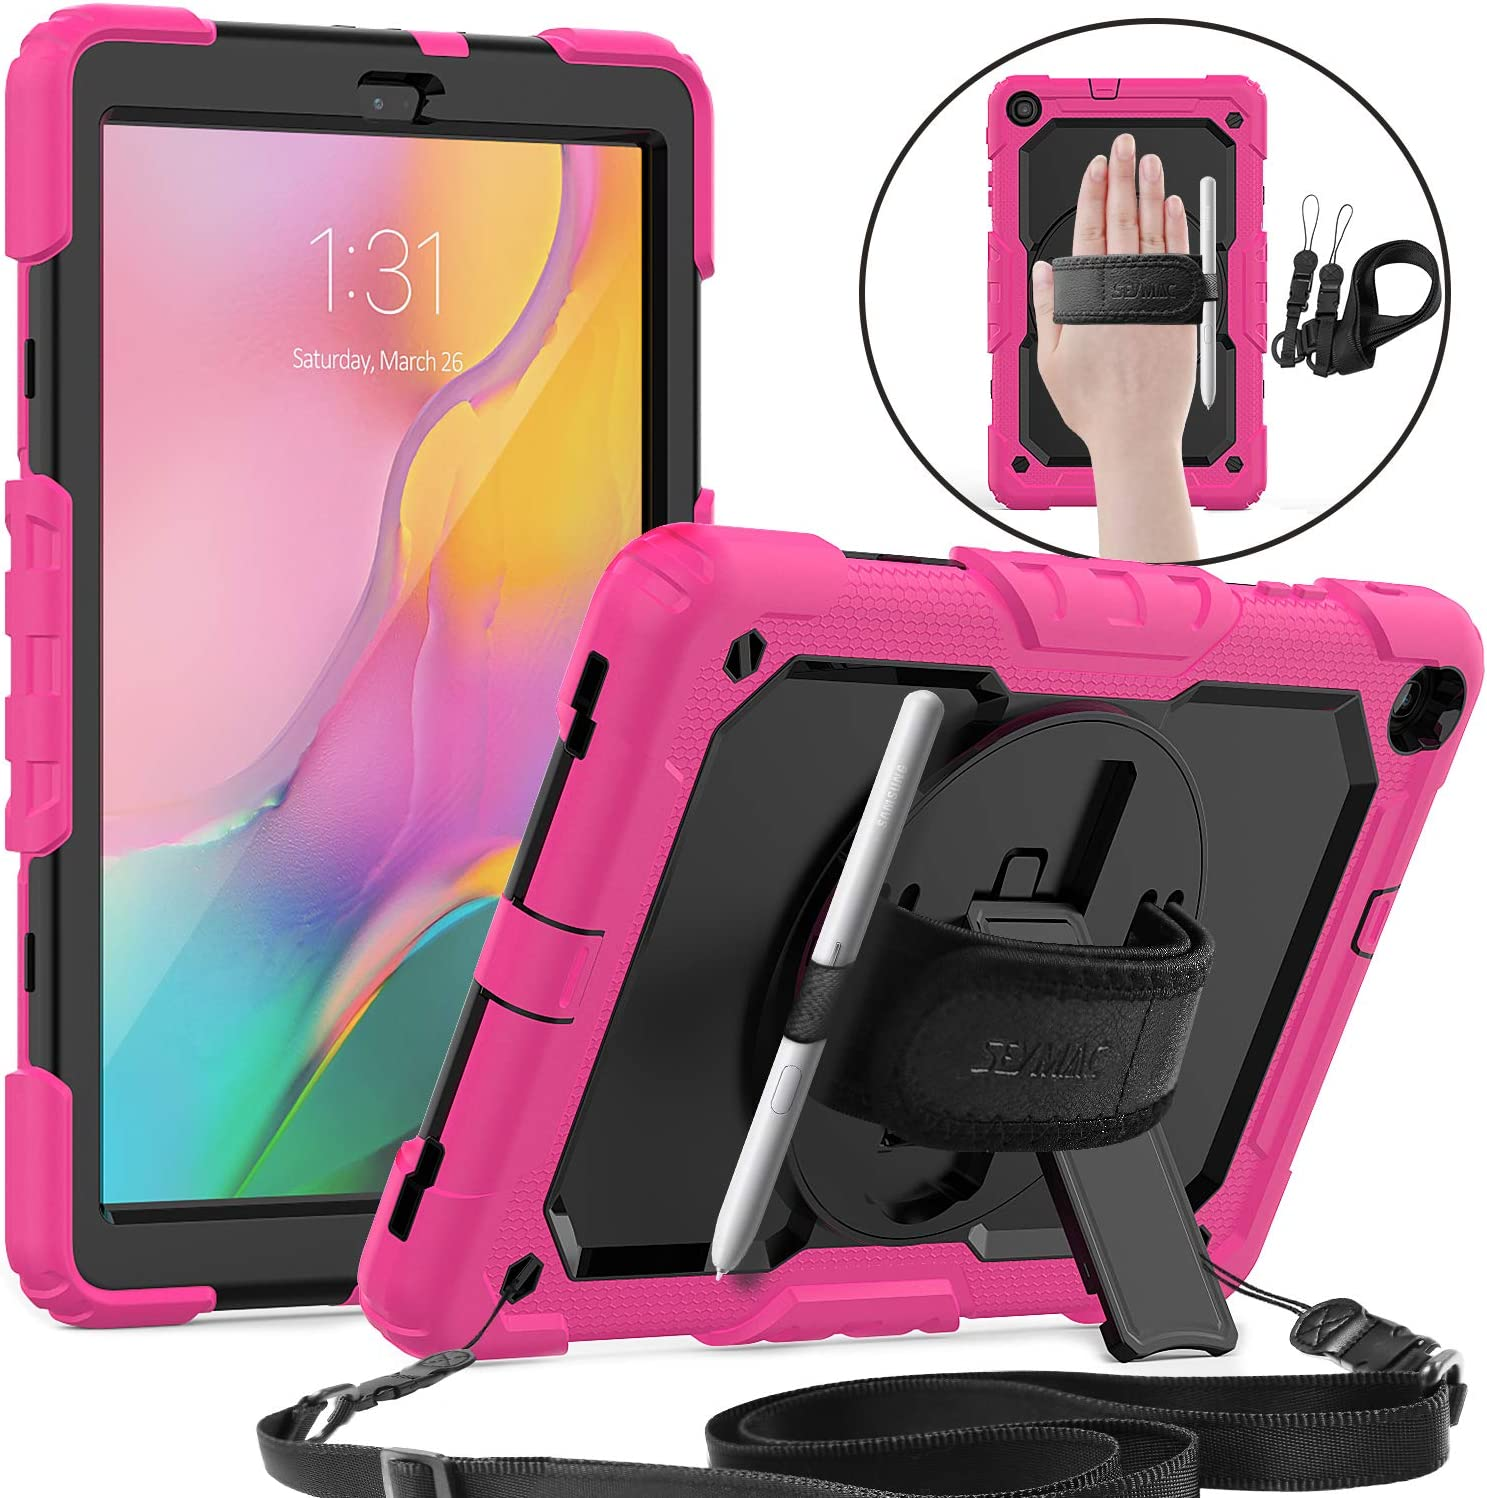 SEYMAC Galaxy Tab A 10.1 2019 Case, SM-T510/T515/T517, [360 Rotate Hand Strap &Stand] Rugged Protective Case with Shoulder Strap Pen Holder Screen Protector Compatib Samsung Tab A 10.1 2019-Black/Pink